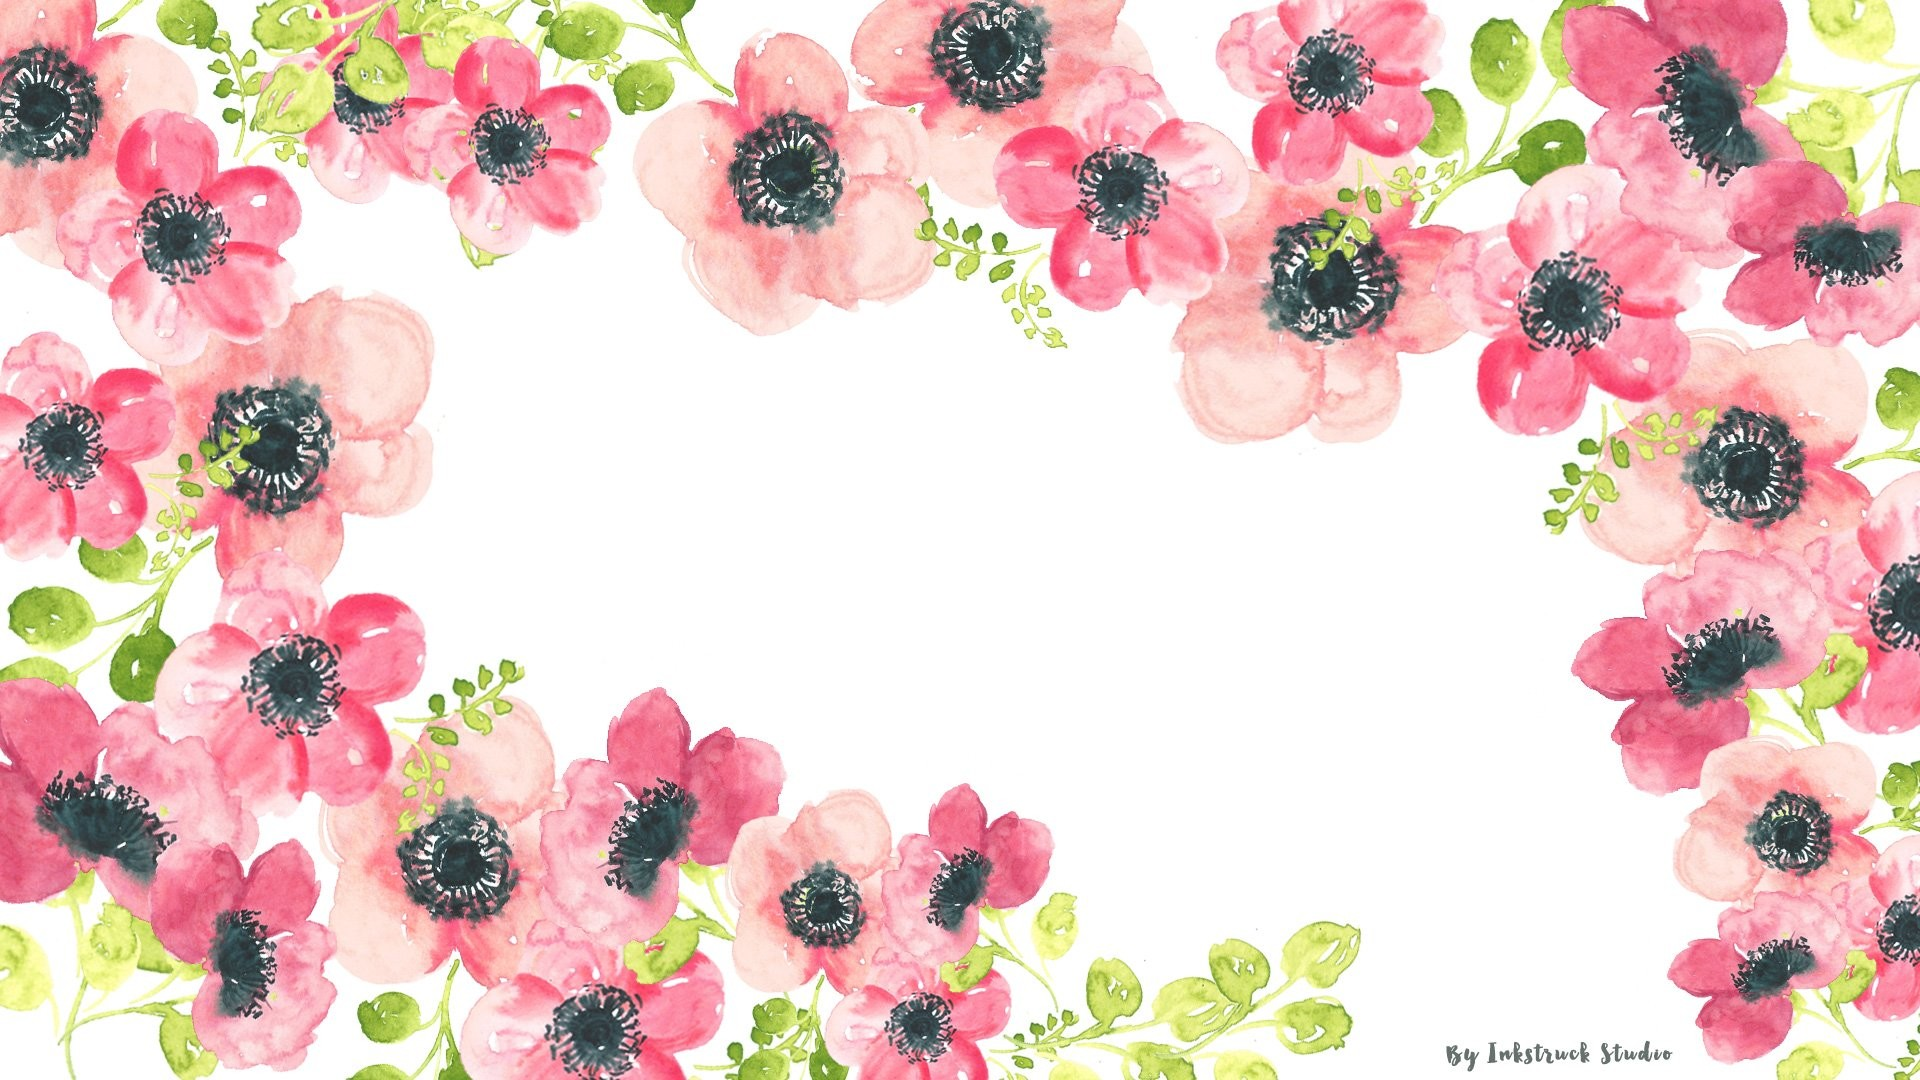 Download the choice of your watercolor floral wallpapers by clicking the  links below:-